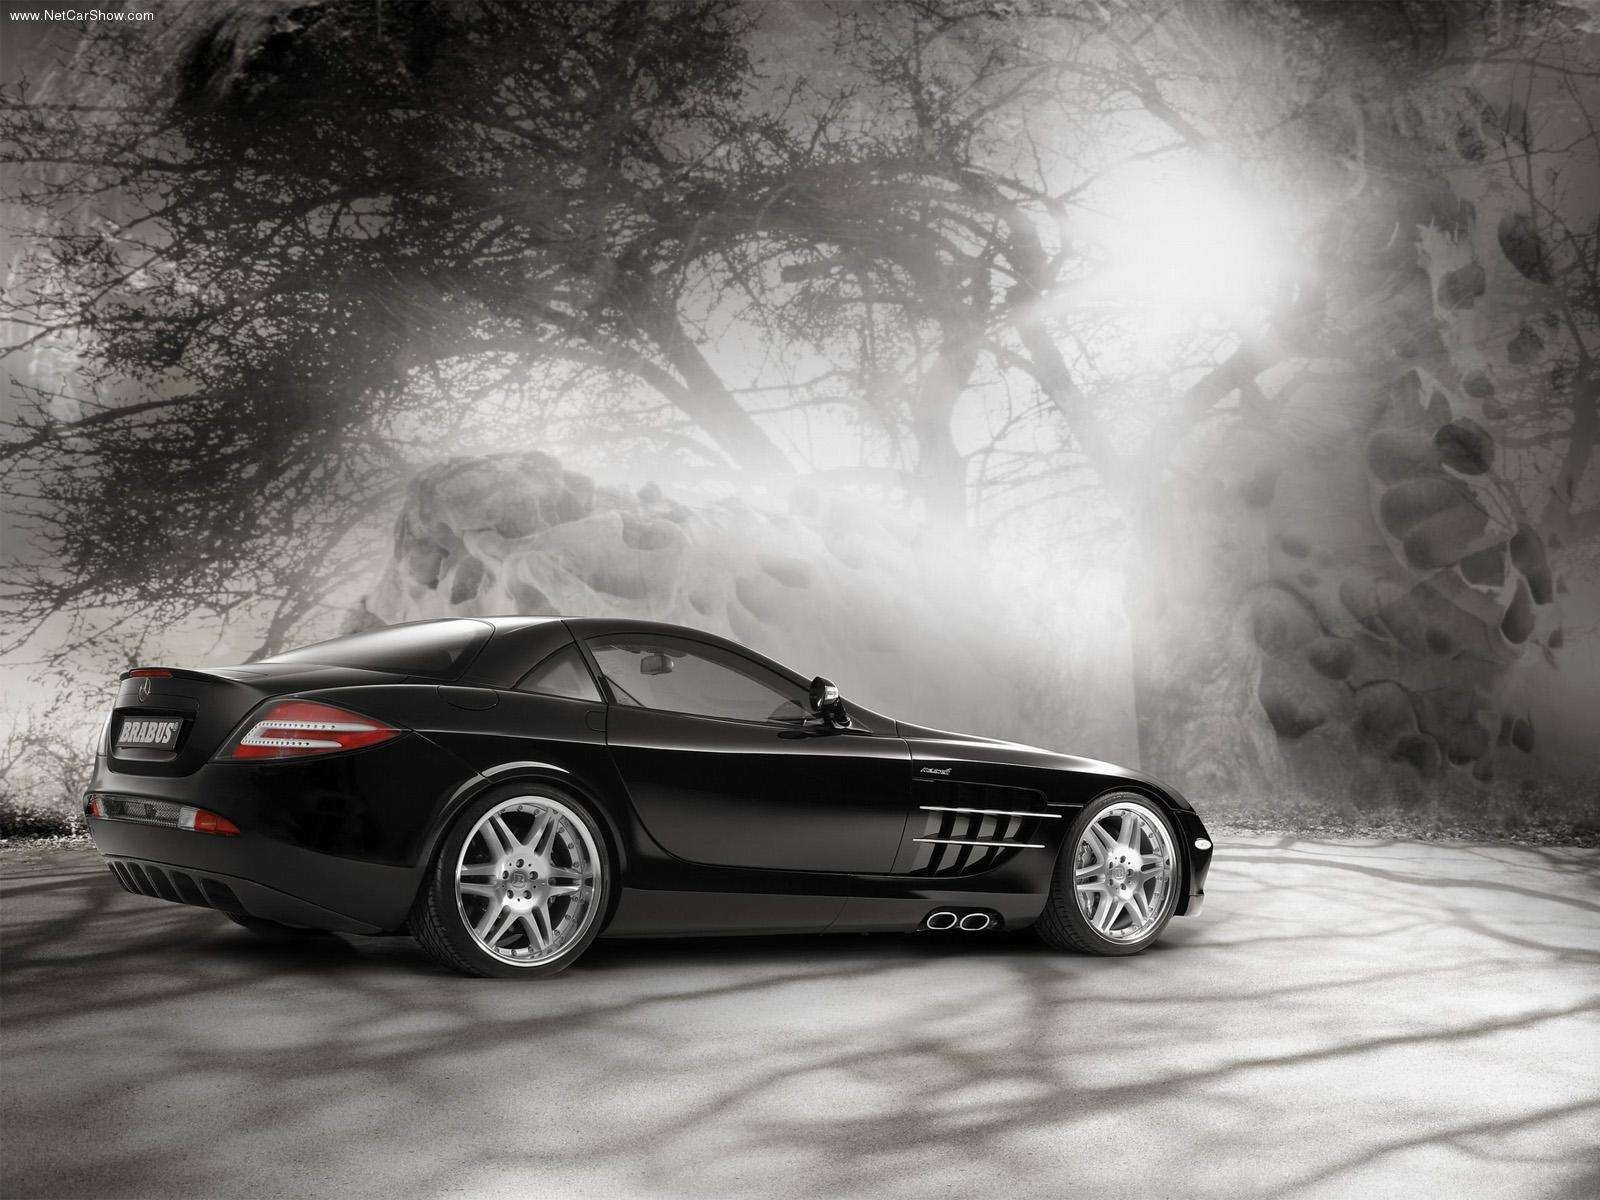 cars Mercedes-Benz German cars HD Wallpaper